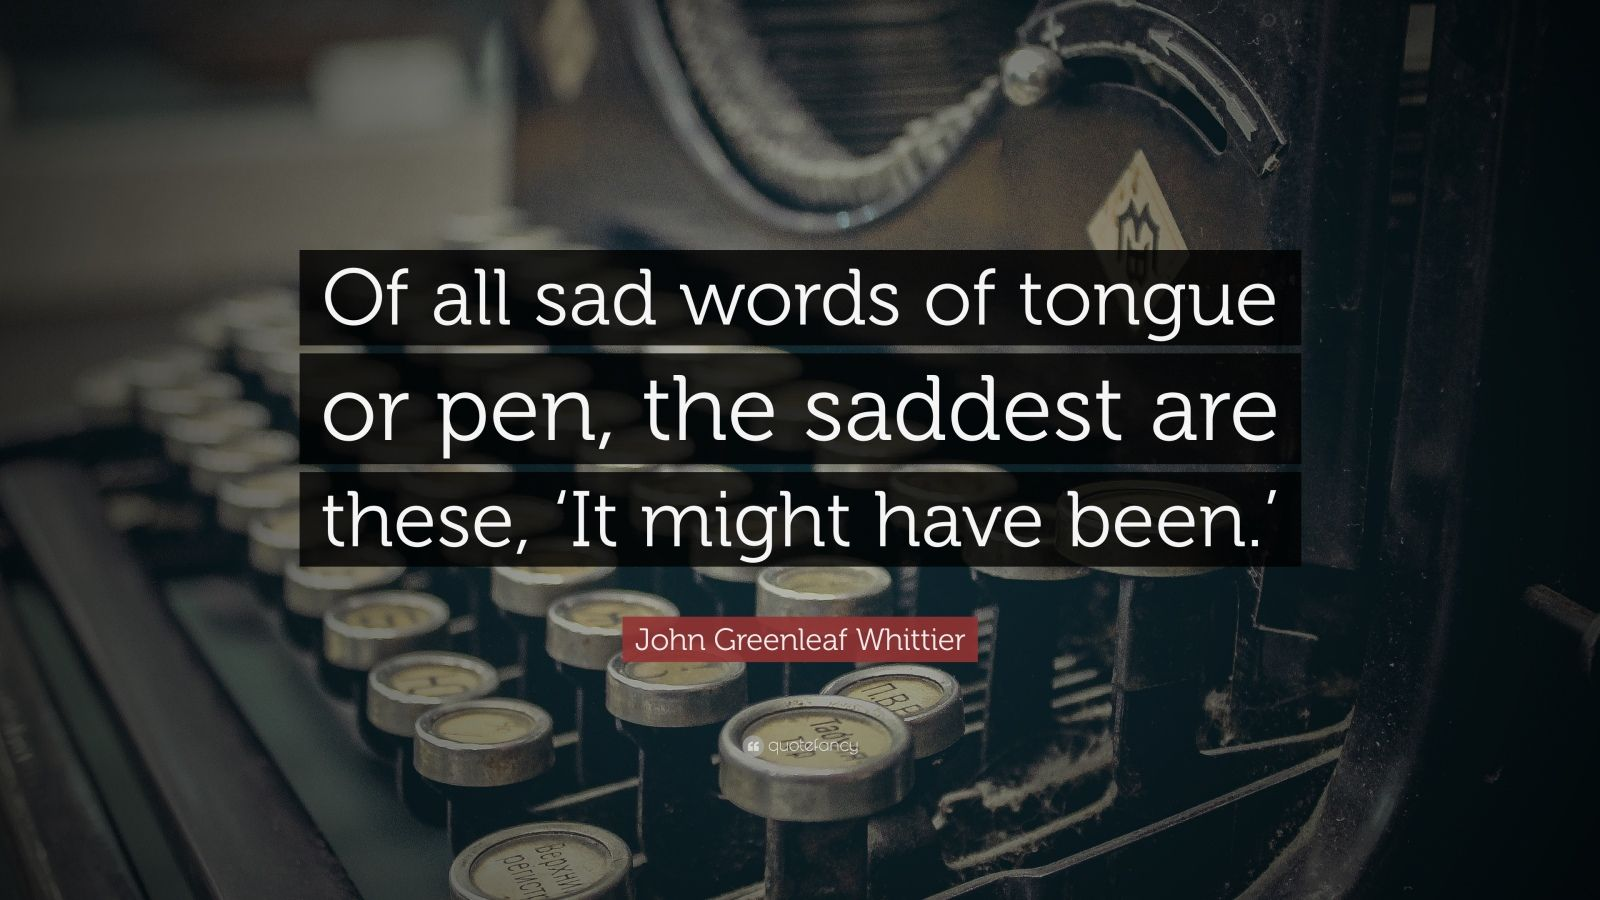 https://quotefancy.com/media/wallpaper/1600x900/28999-John-Greenleaf-Whittier-Quote-Of-all-sad-words-of-tongue-or-pen.jpg